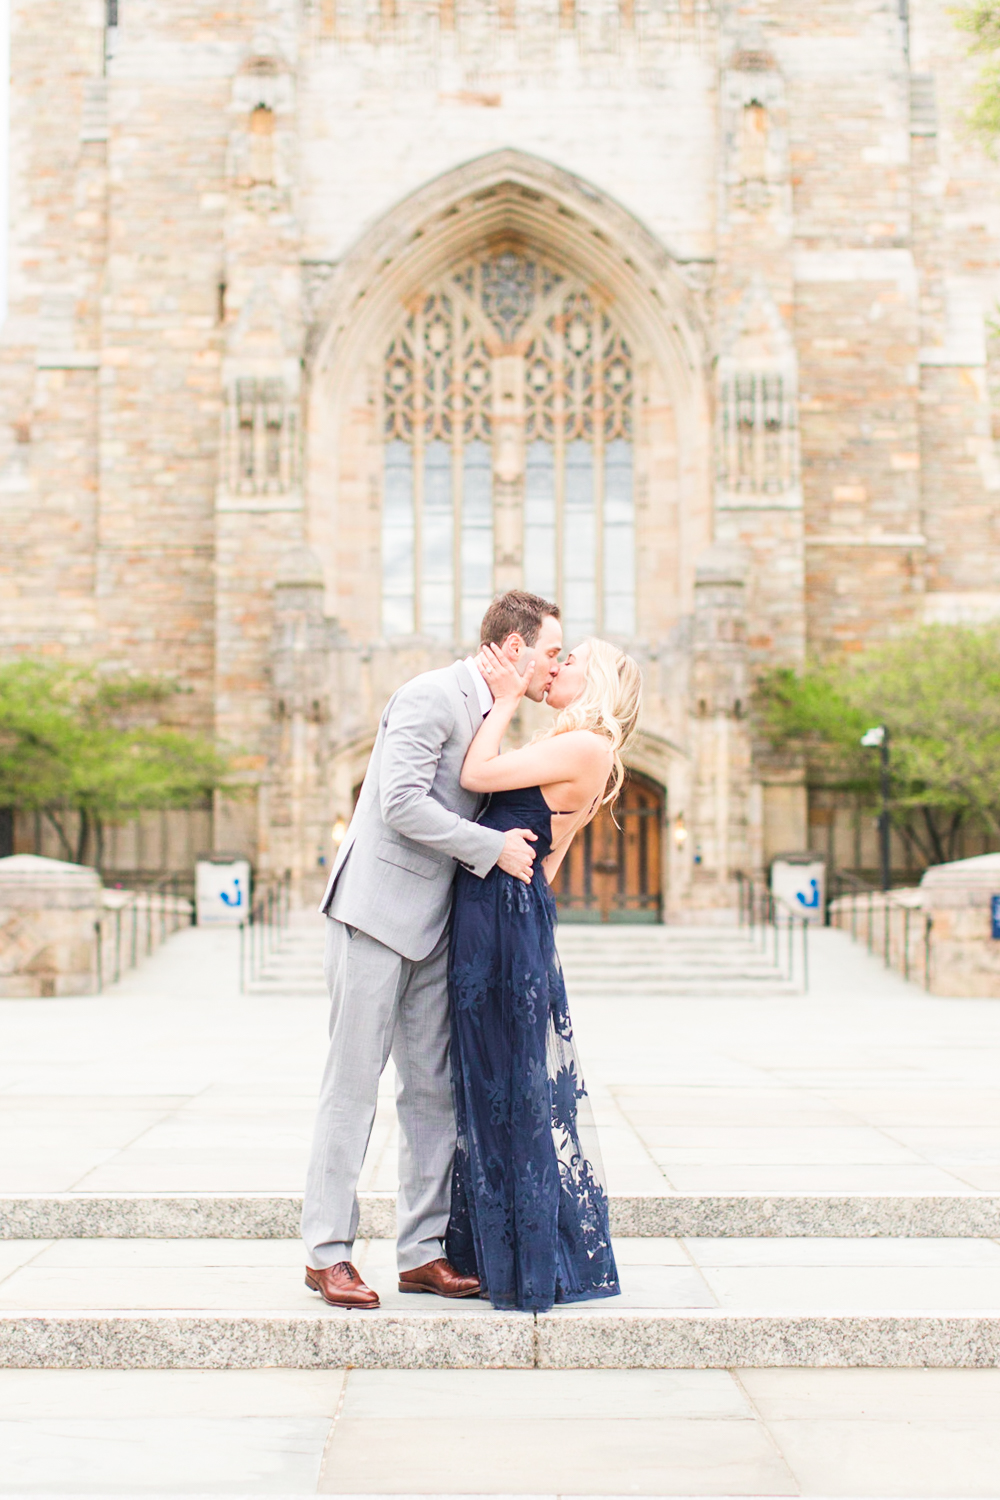 sterling-library-yale-university-wedding-new-haven-connecticut-photographer-shaina-lee-photography-photo